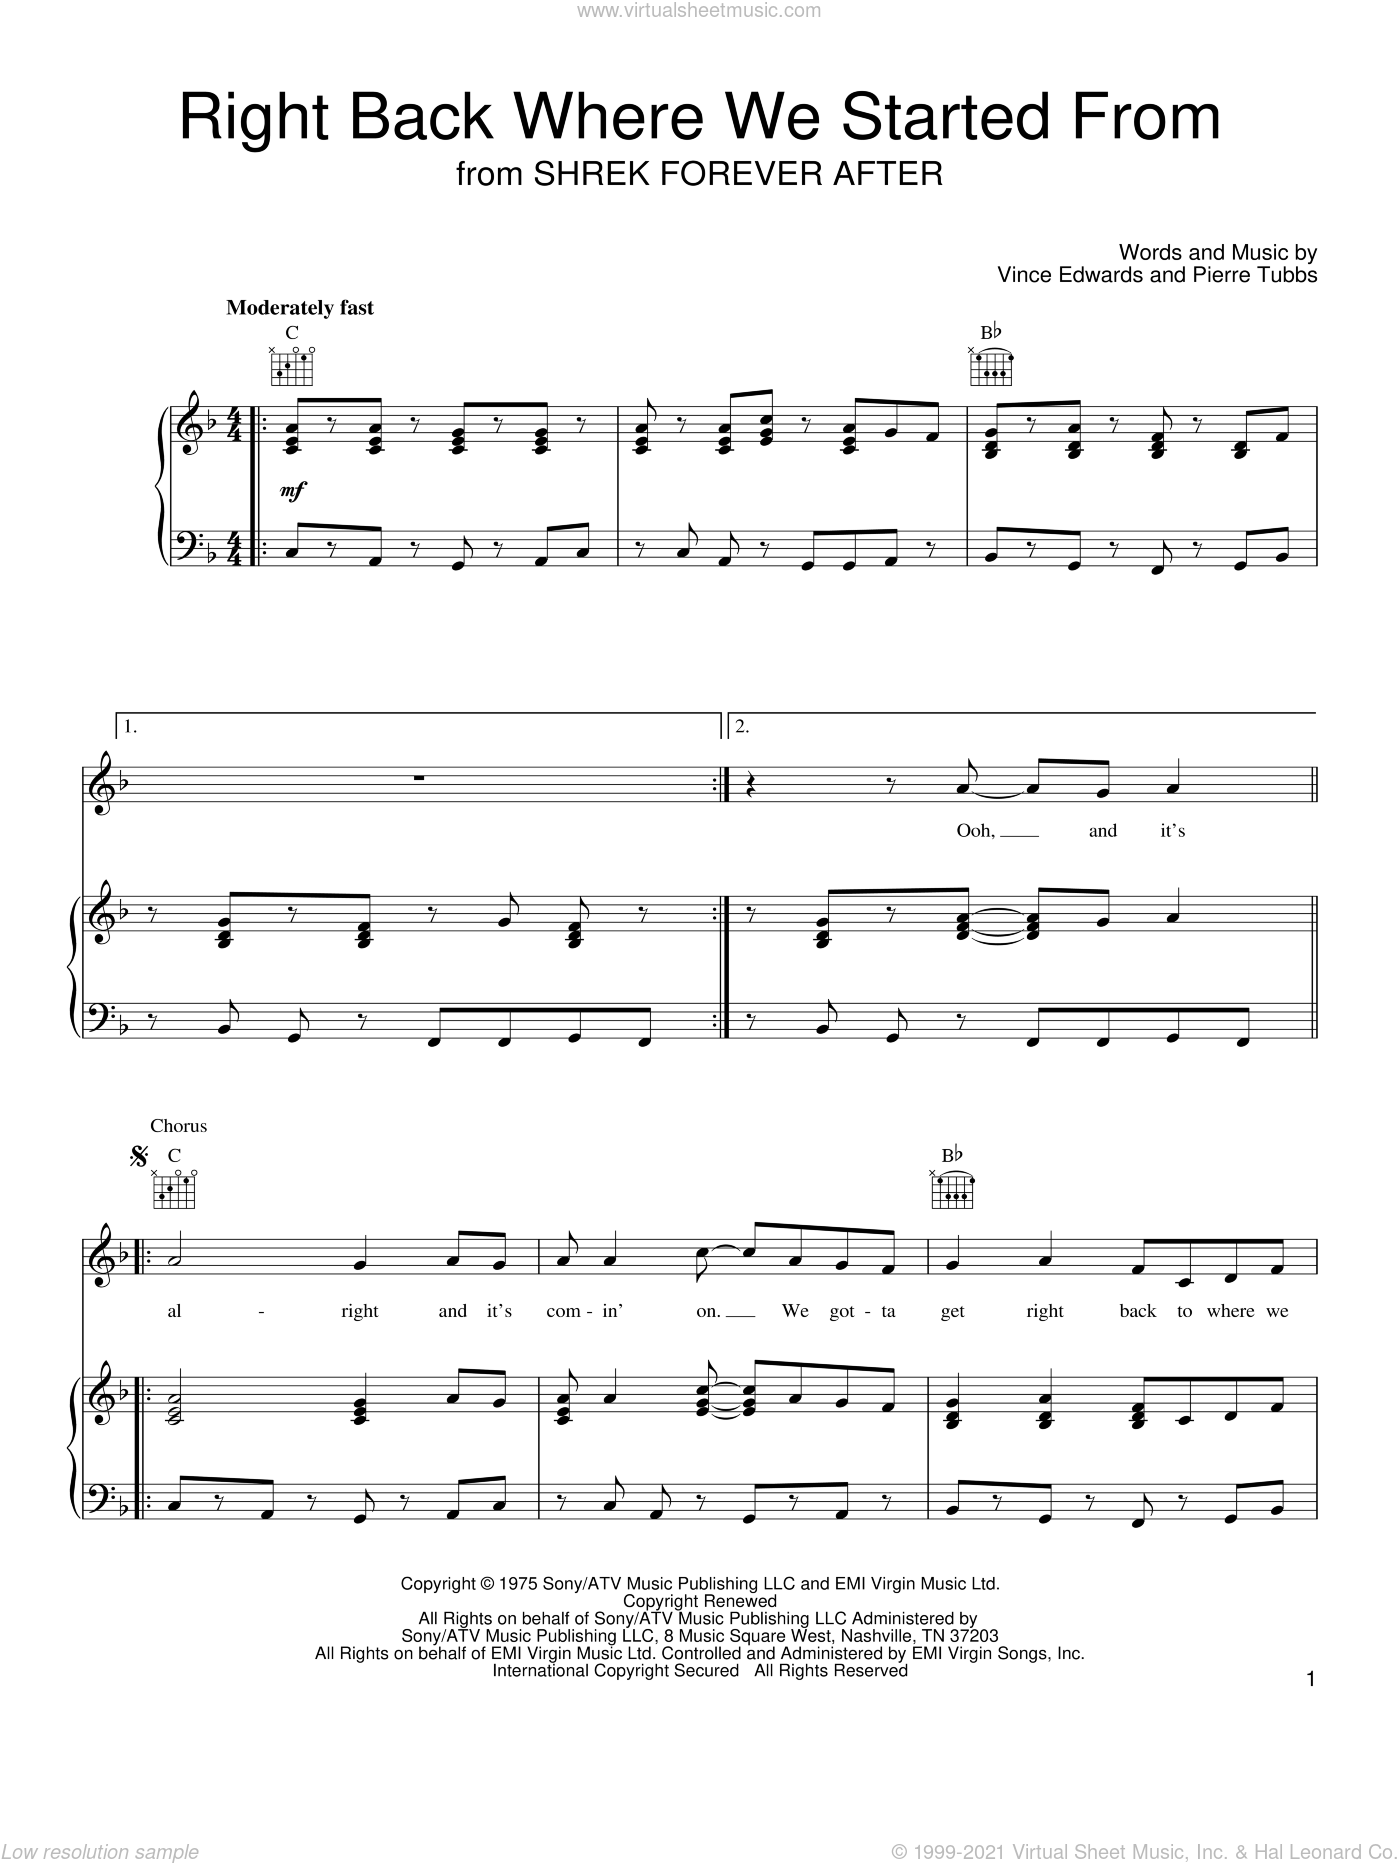 Right Back Where We Started From sheet music for voice, piano or guitar by Vince Edwards